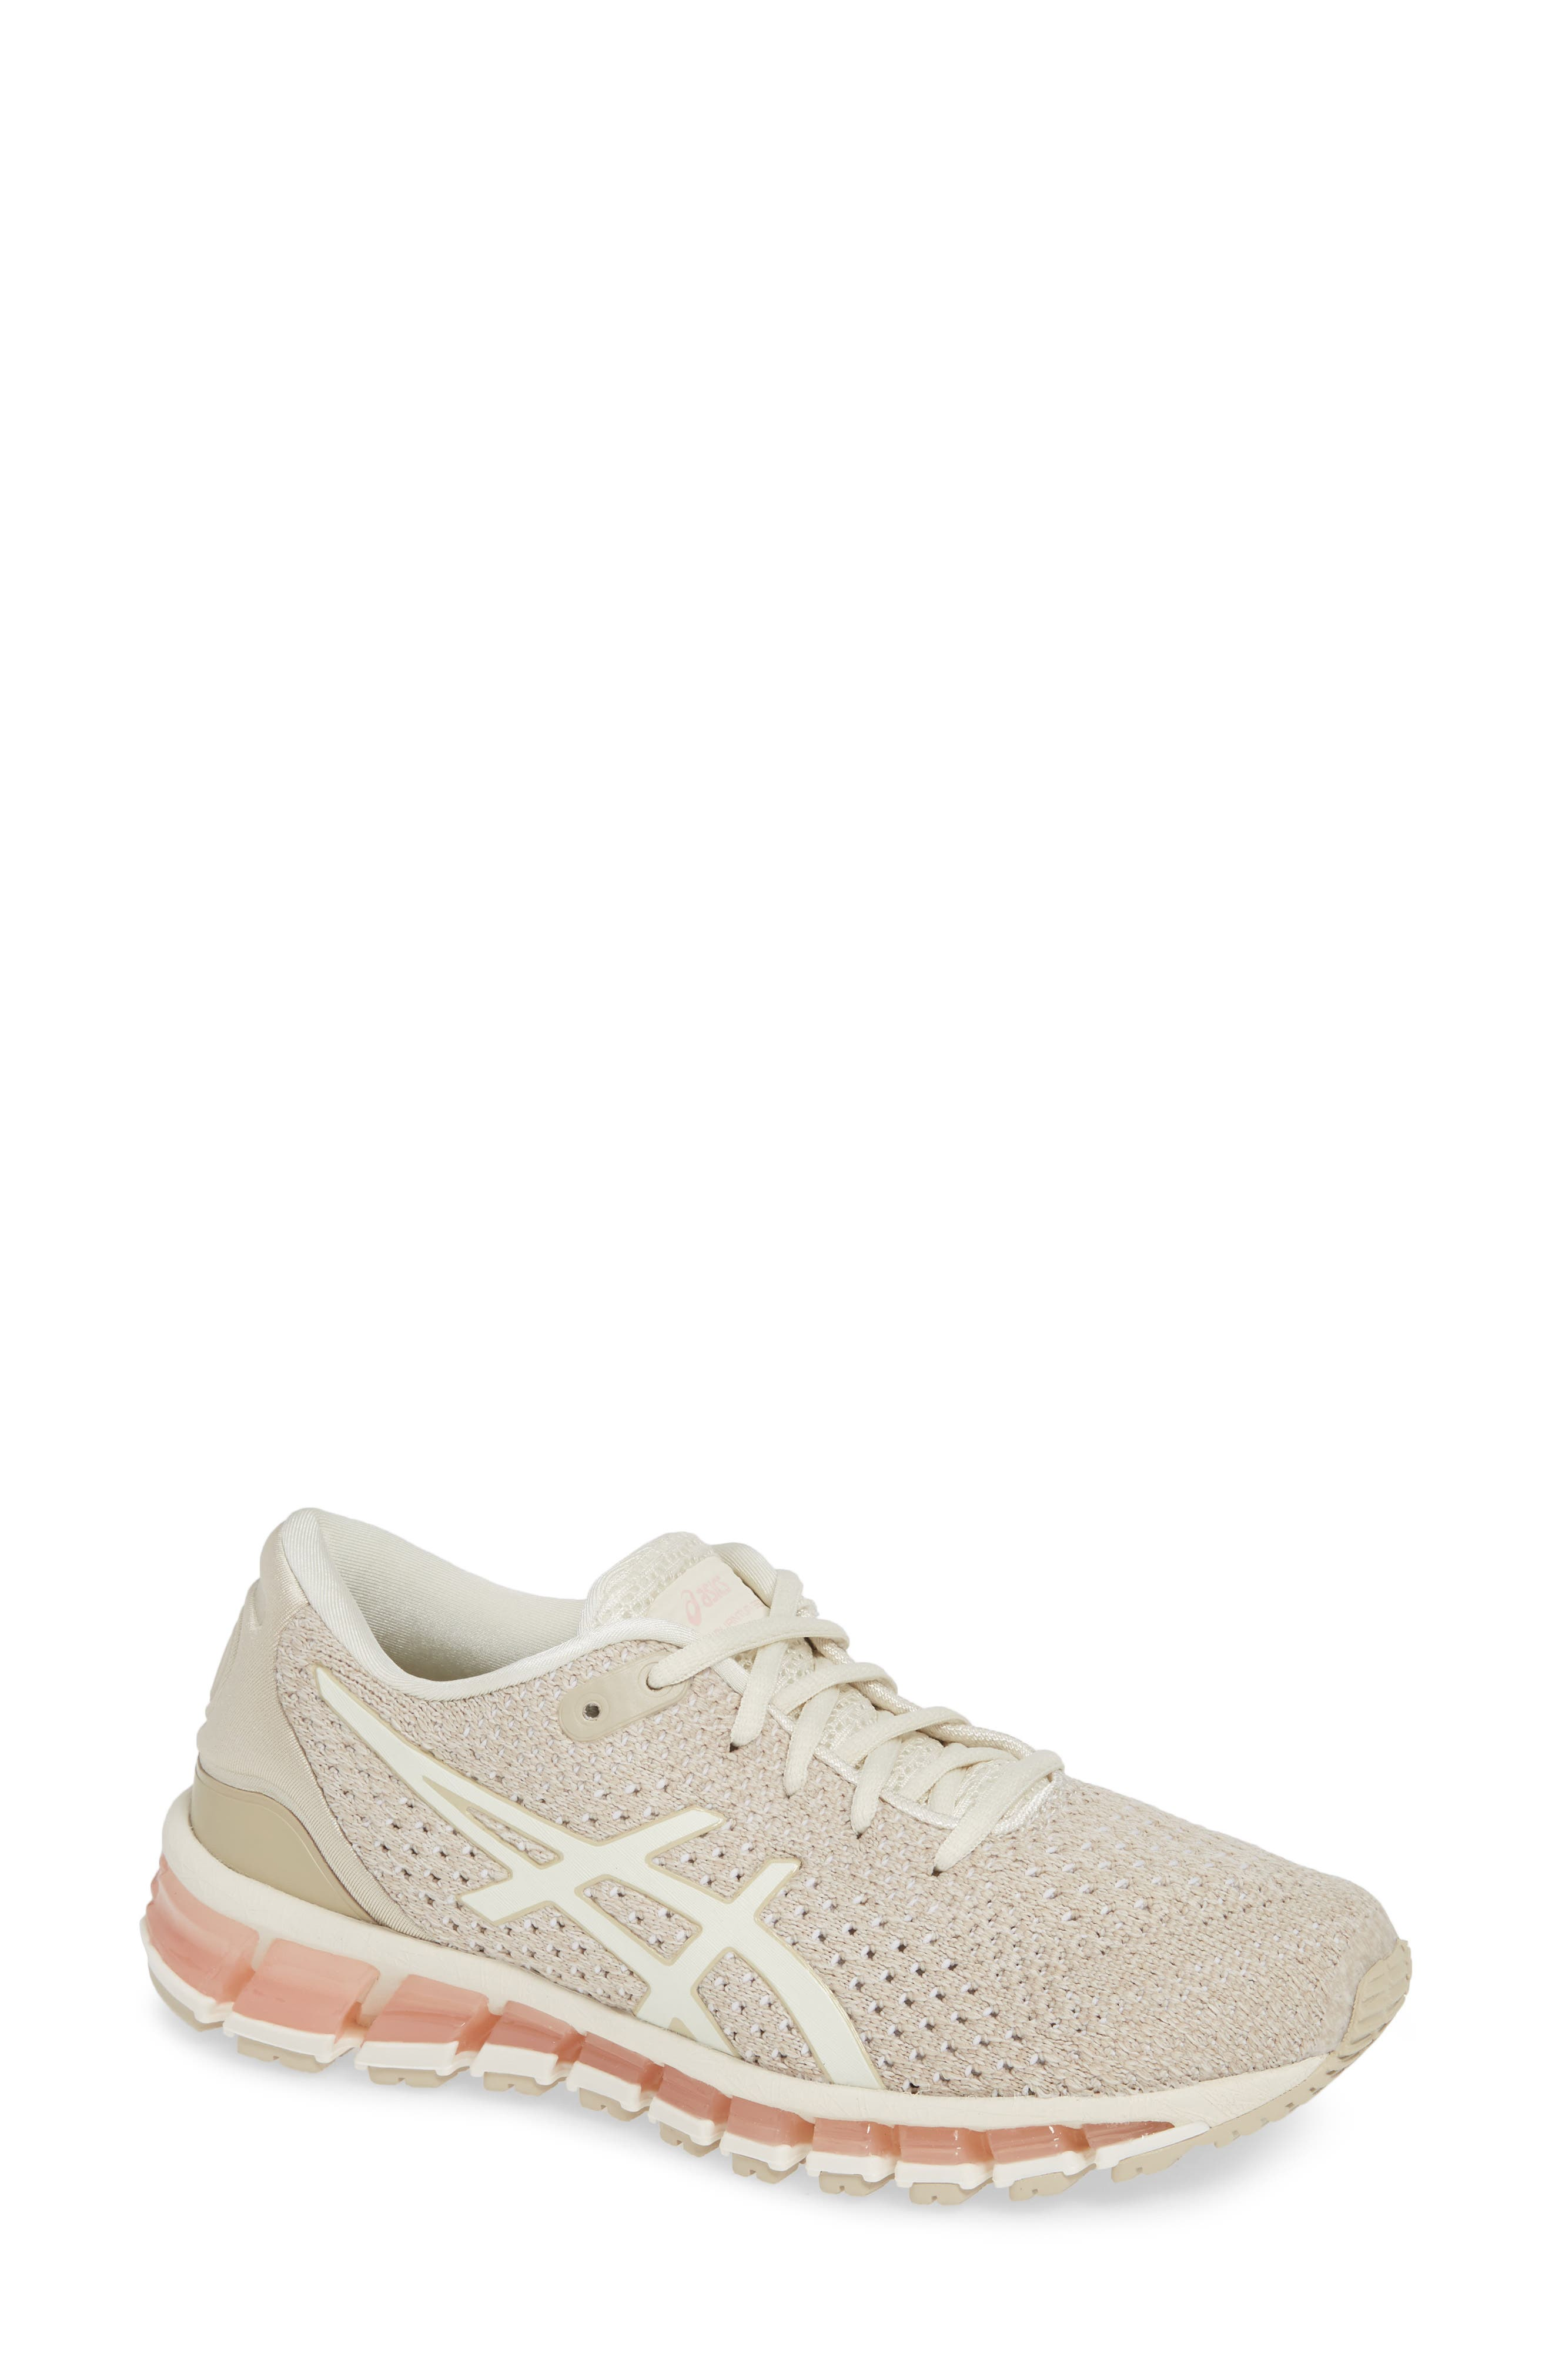 ASICS<SUP>®</SUP> GEL-Quantum 360 Running Shoe, Main, color, BIRCH/ FEATHER GREY